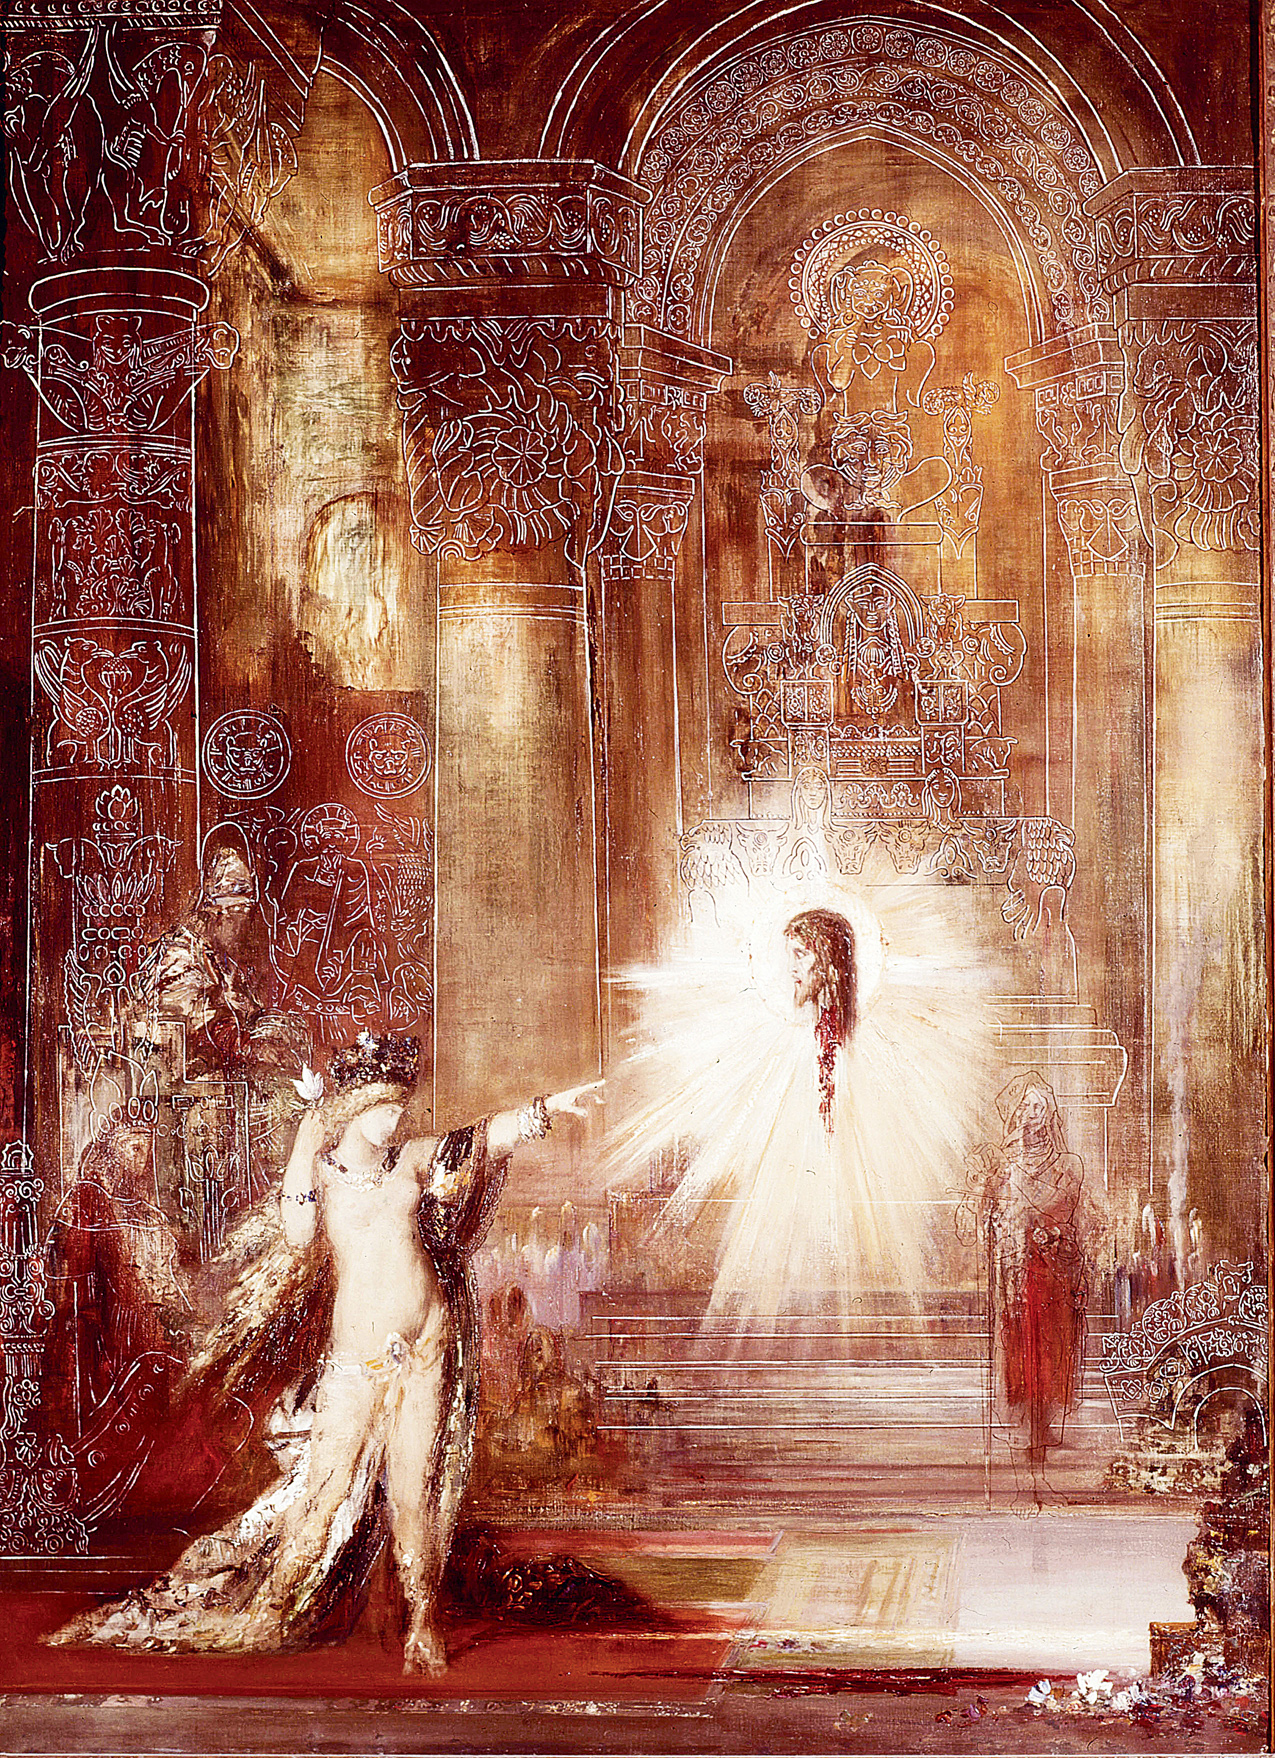 The Apparition, by Gustave Moreau, 1876. Musée Gustave Moreau, Paris, France.